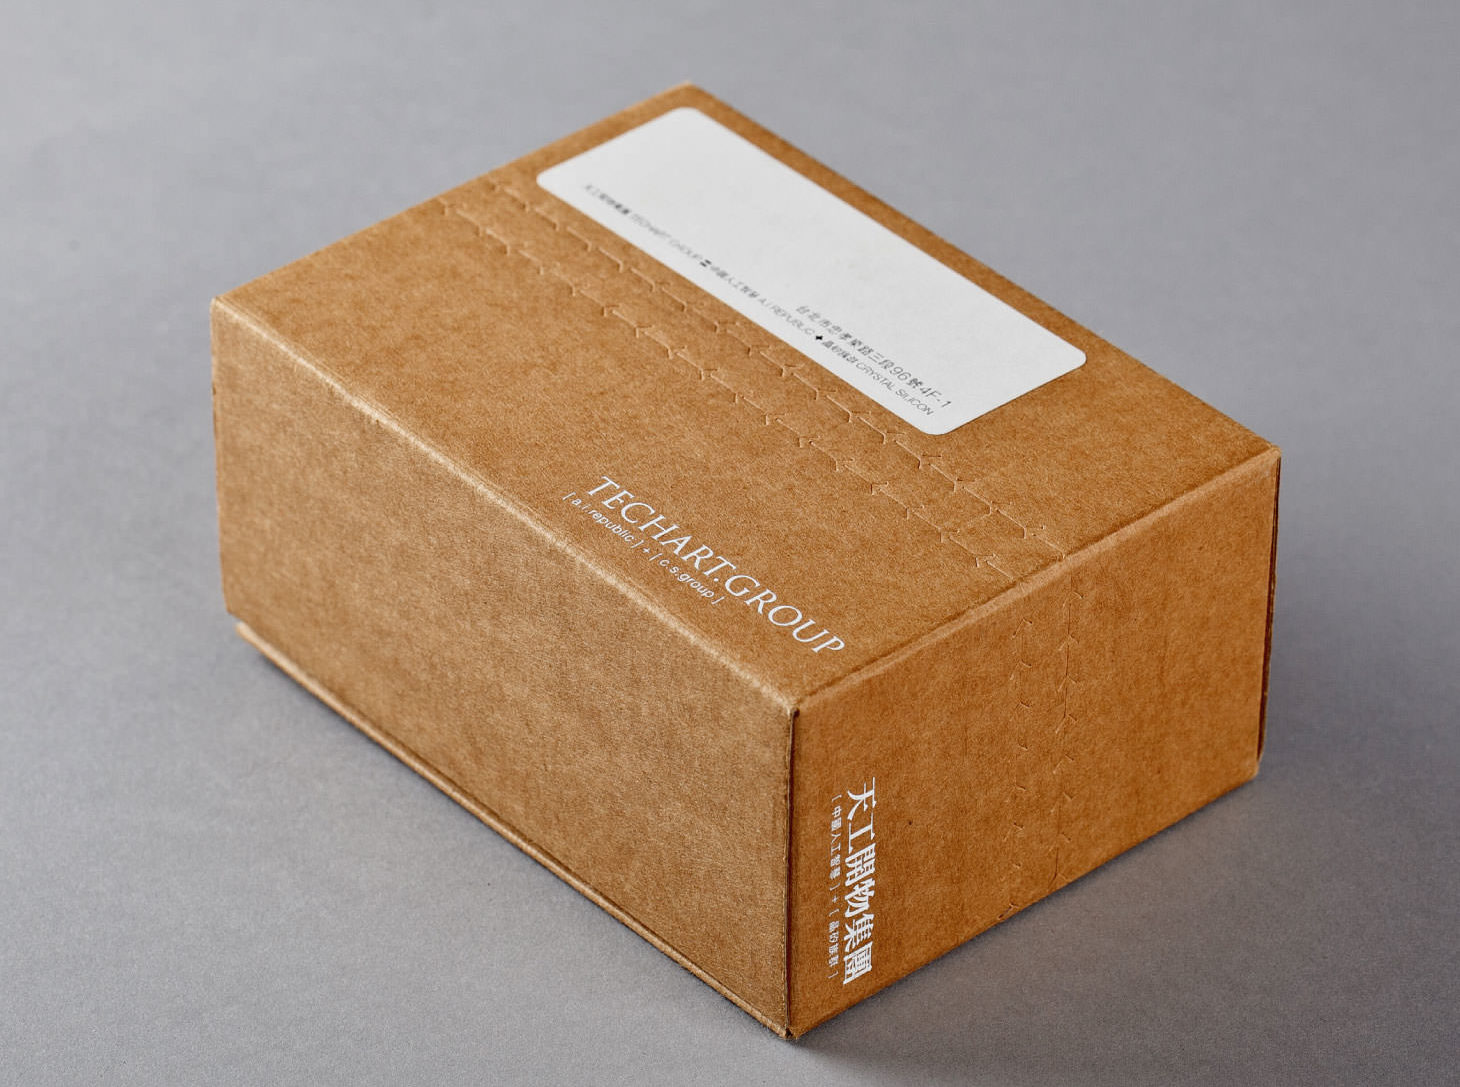 TCA_packaging_20150226_4-2.jpg